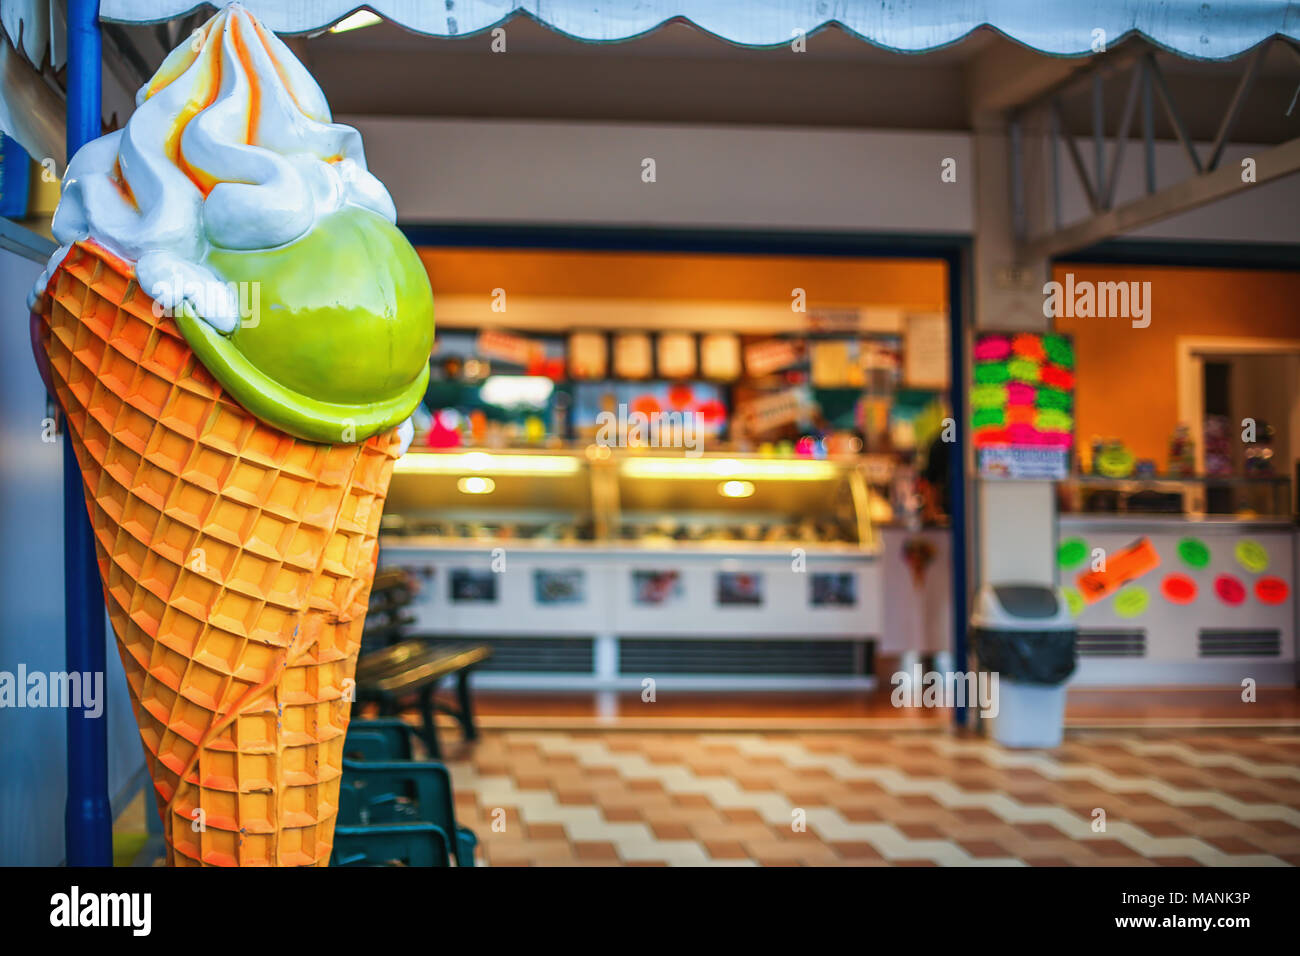 Colorful ice cream parlor sign and shop - Stock Image